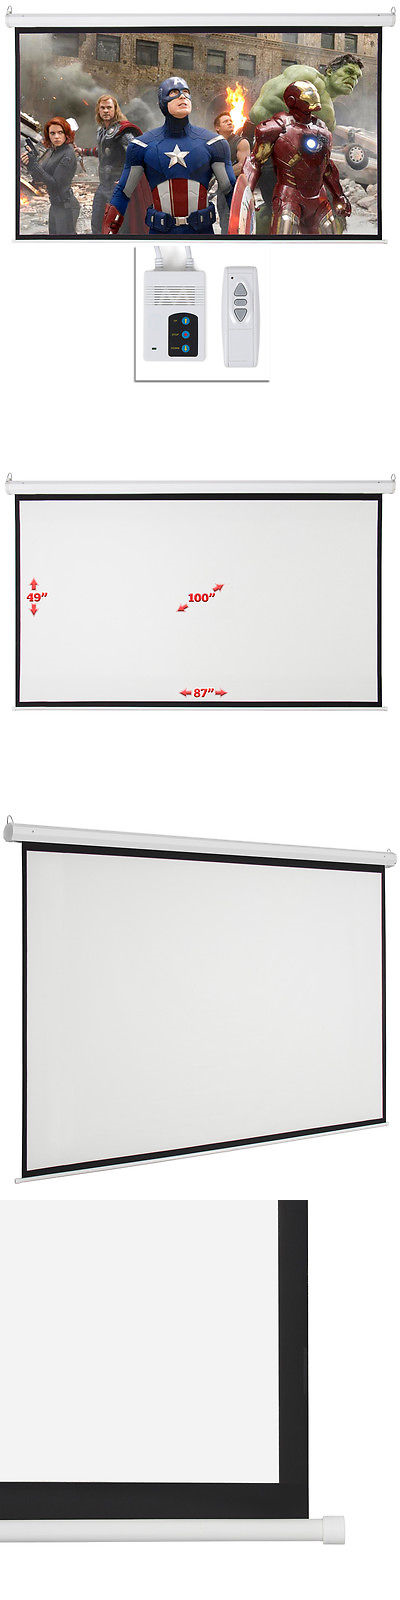 """Projection Screens and Material: New 100"""" 16:9 Hd Foldable Electric Motorized Projector Screen + Remote Control -> BUY IT NOW ONLY: $63.97 on eBay!"""